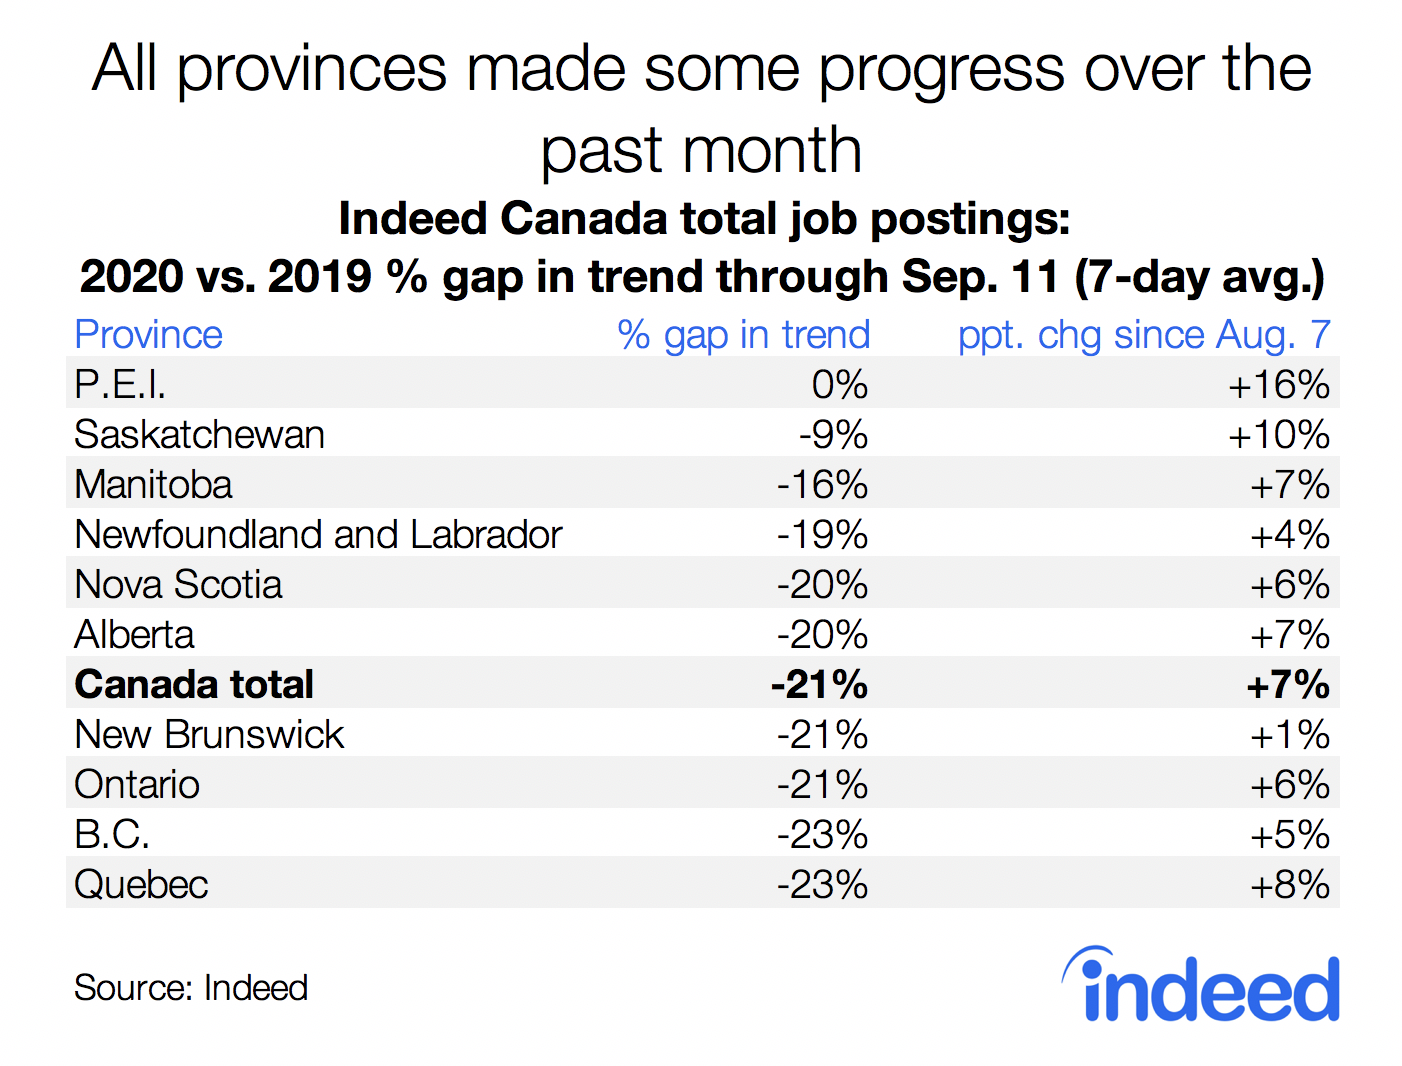 Table showing all provinces made progress in job posting amount in August 2020.